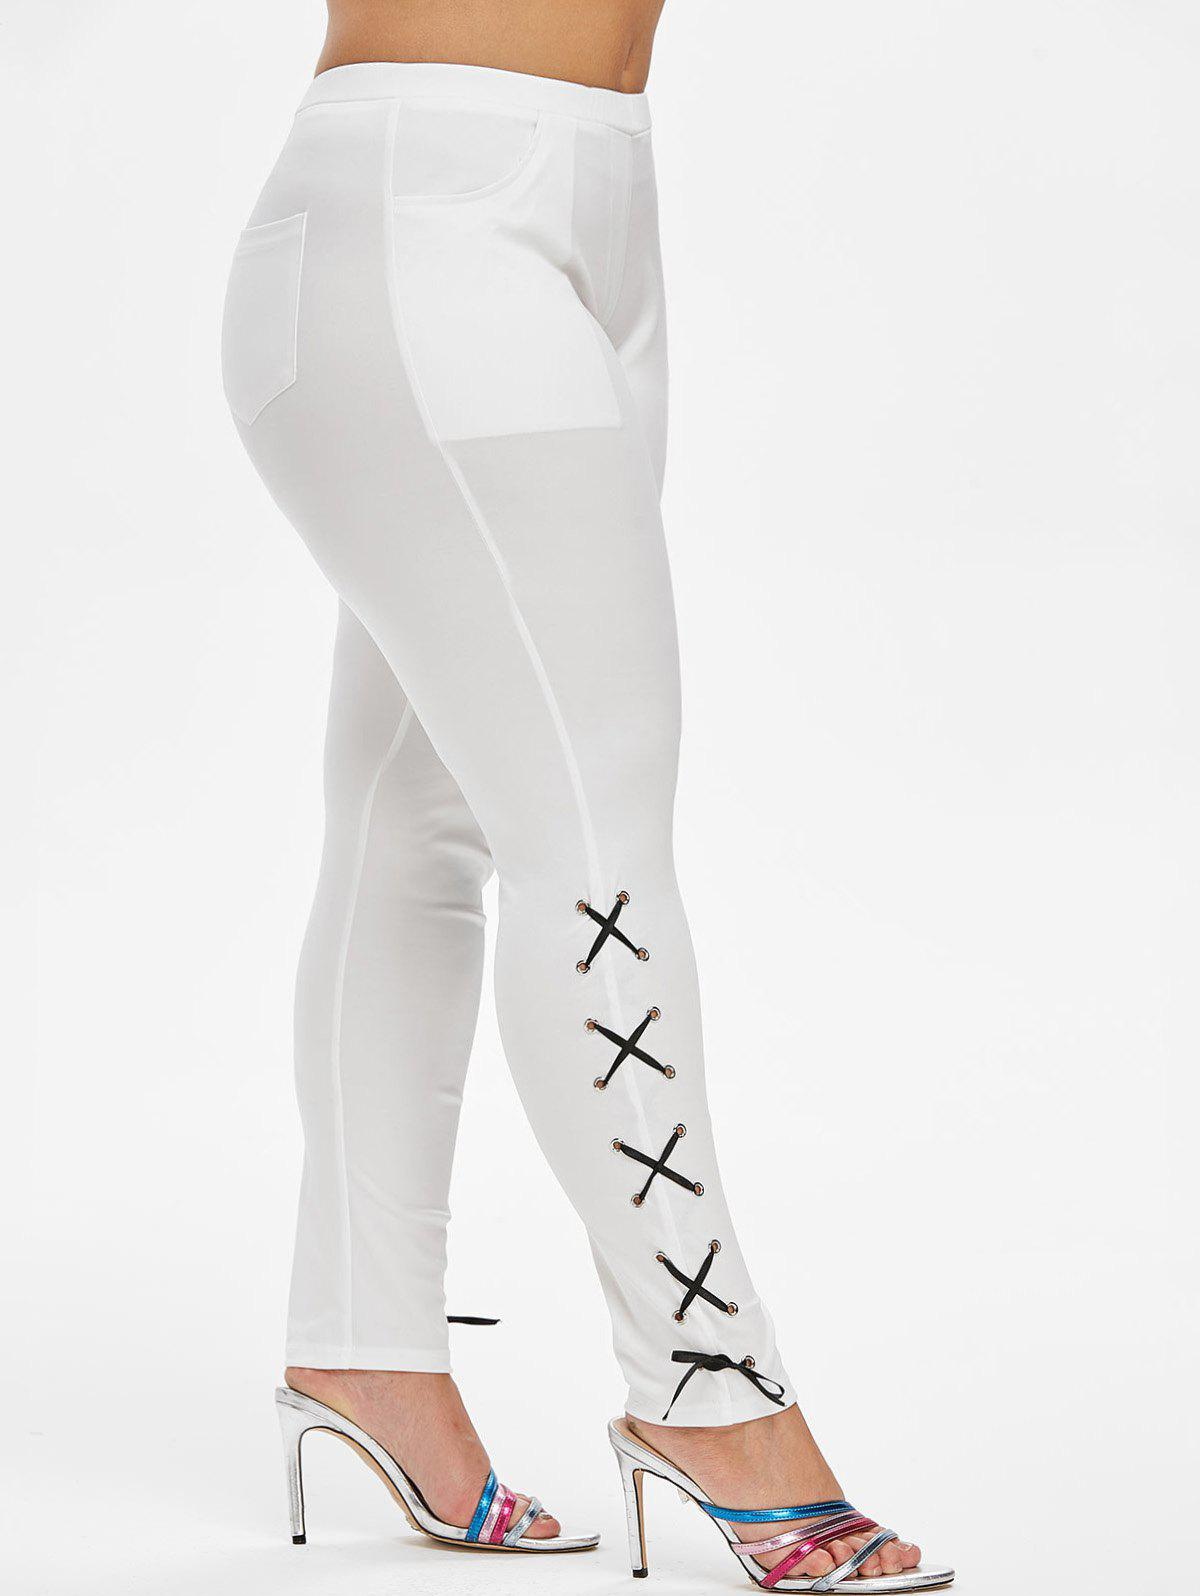 Store Pockets Lace Up Side Skinny Plus Size Pants